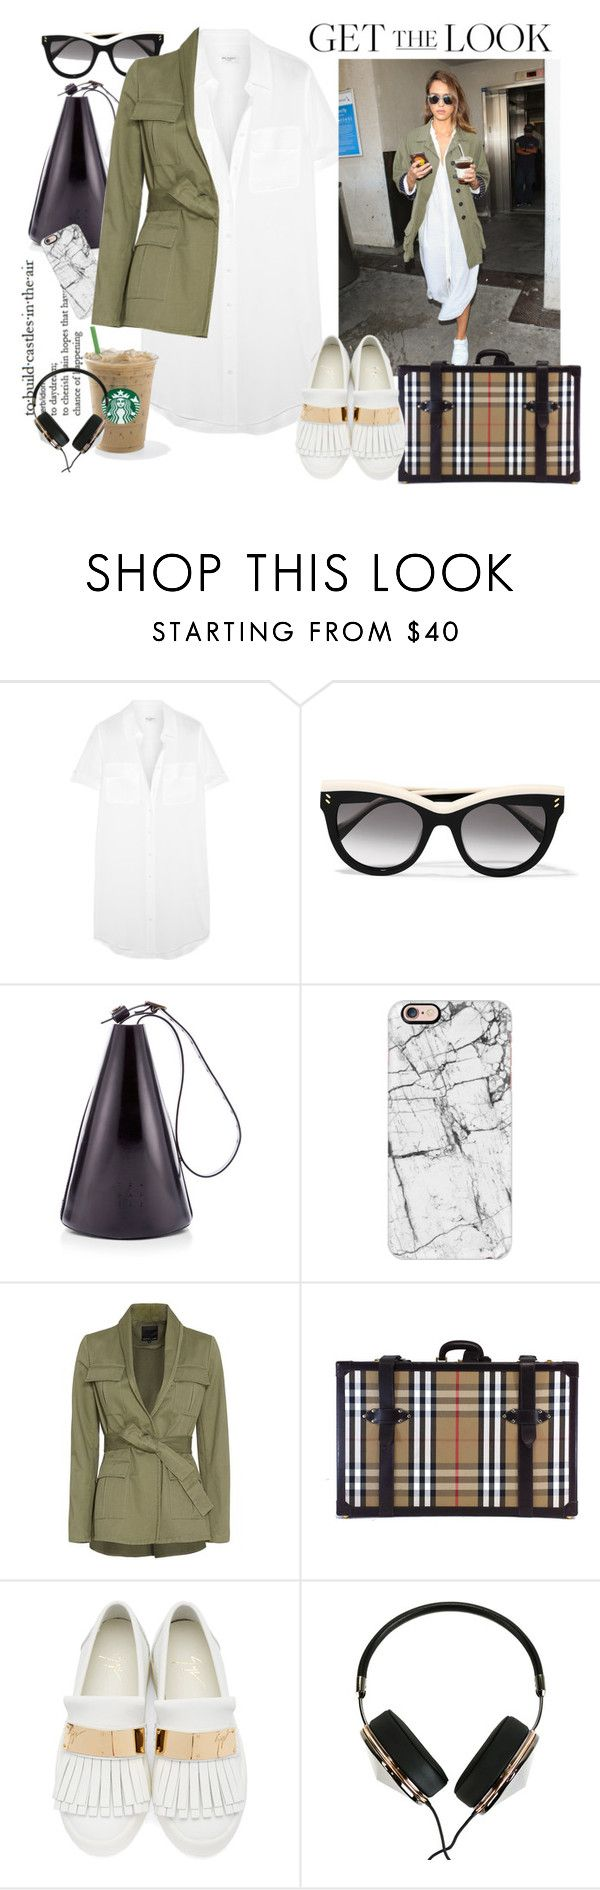 """Learning To Fly"" by harperleo ❤ liked on Polyvore featuring Equipment, STELLA McCARTNEY, TradeMark, Casetify, Marissa Webb, Burberry, Giuseppe Zanotti, Frends, GetTheLook and airportstyle"